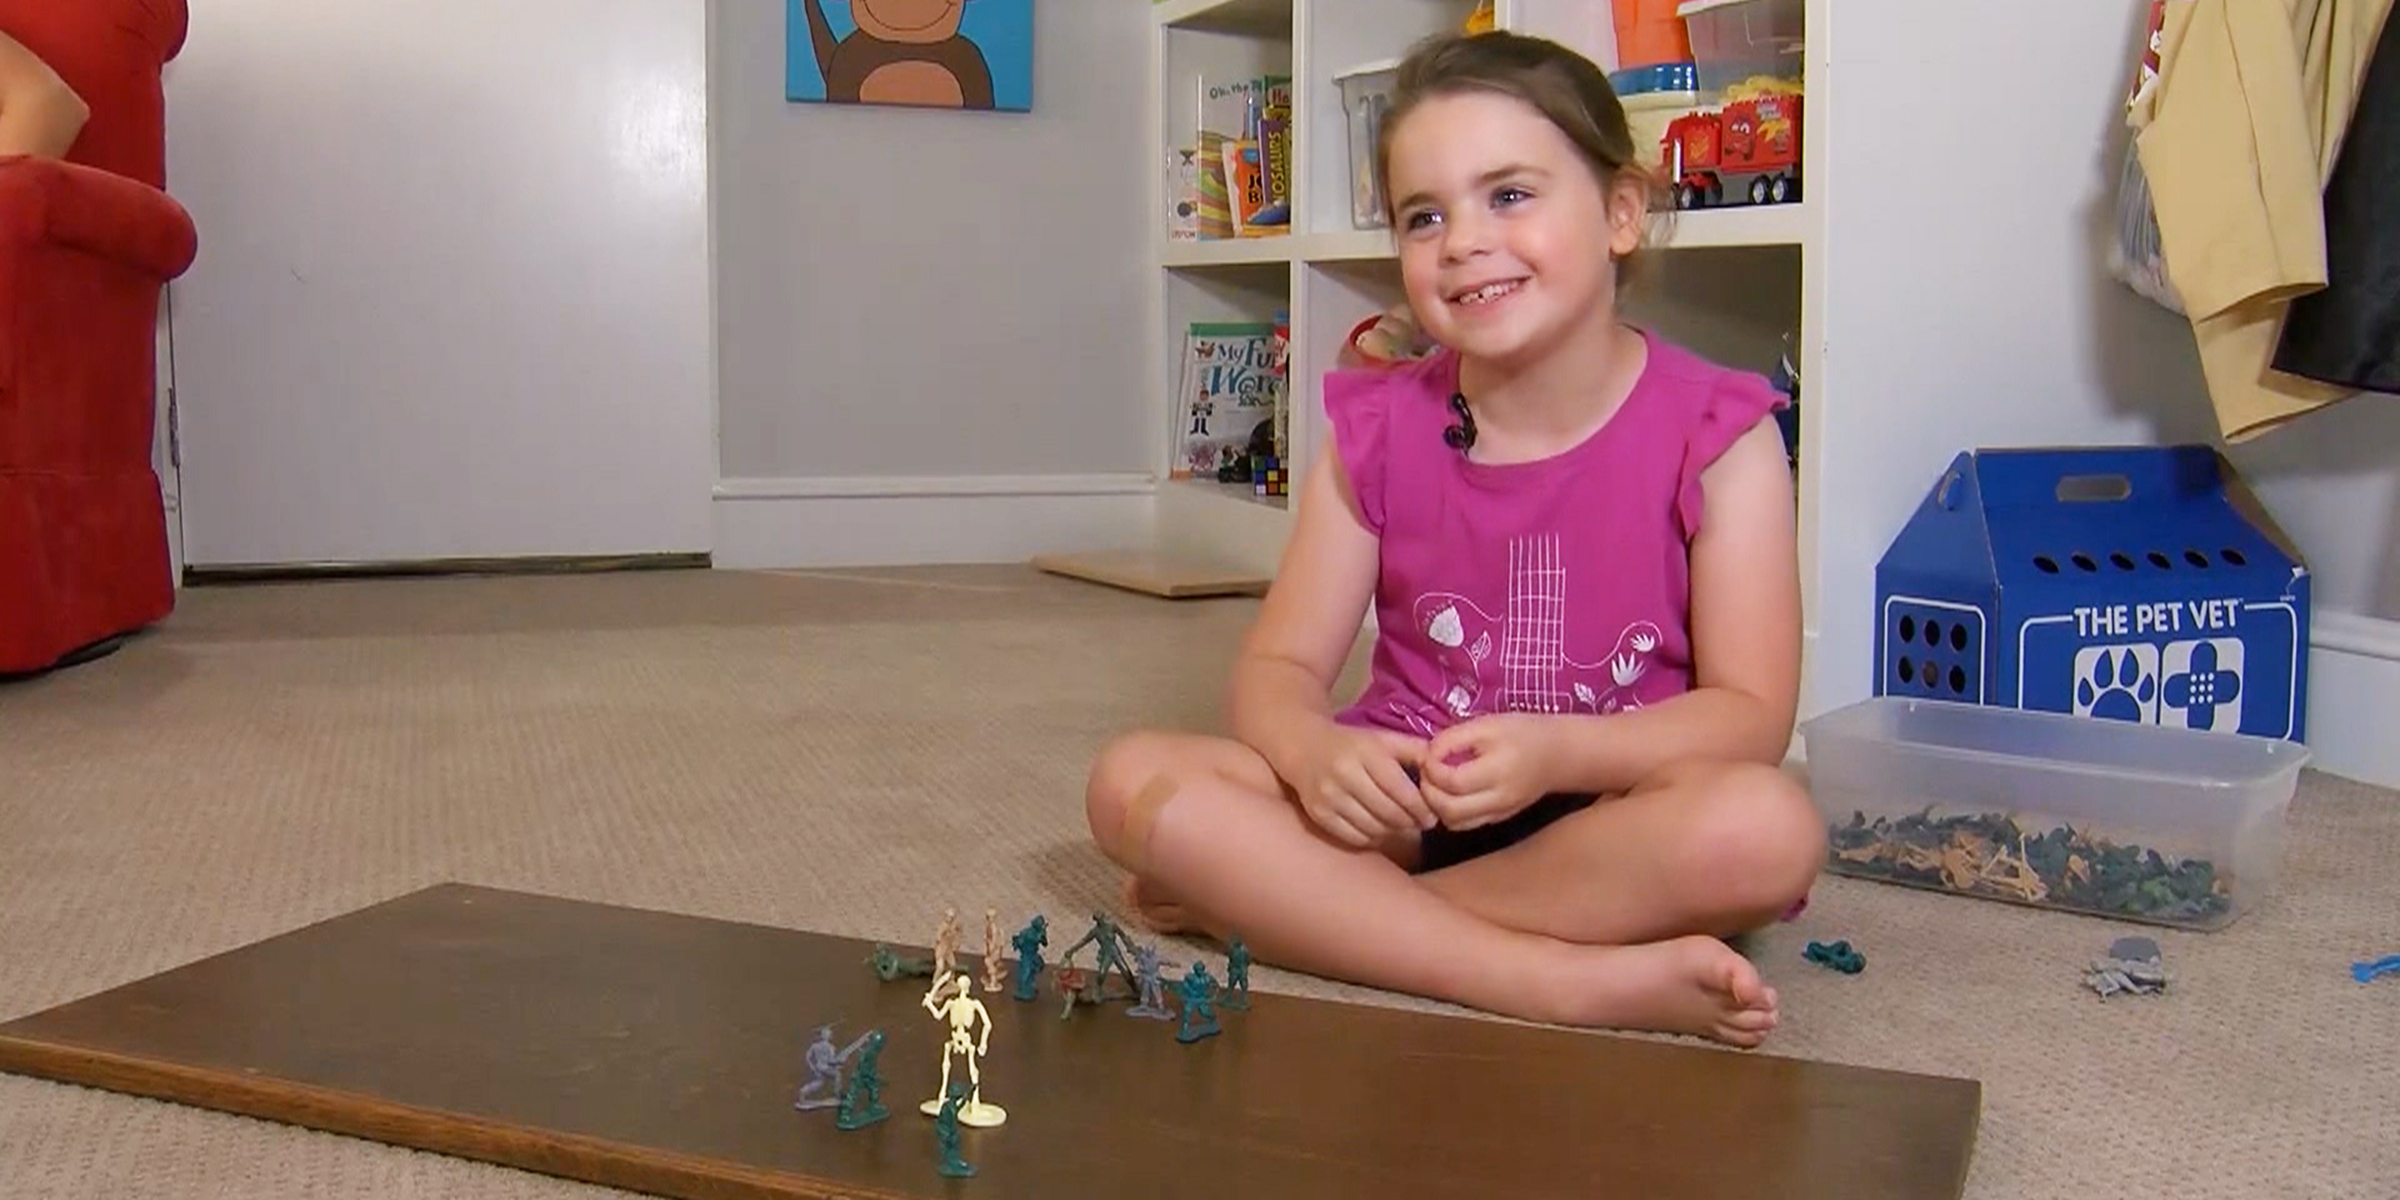 Six-year-old girl helps launch female green army men toys